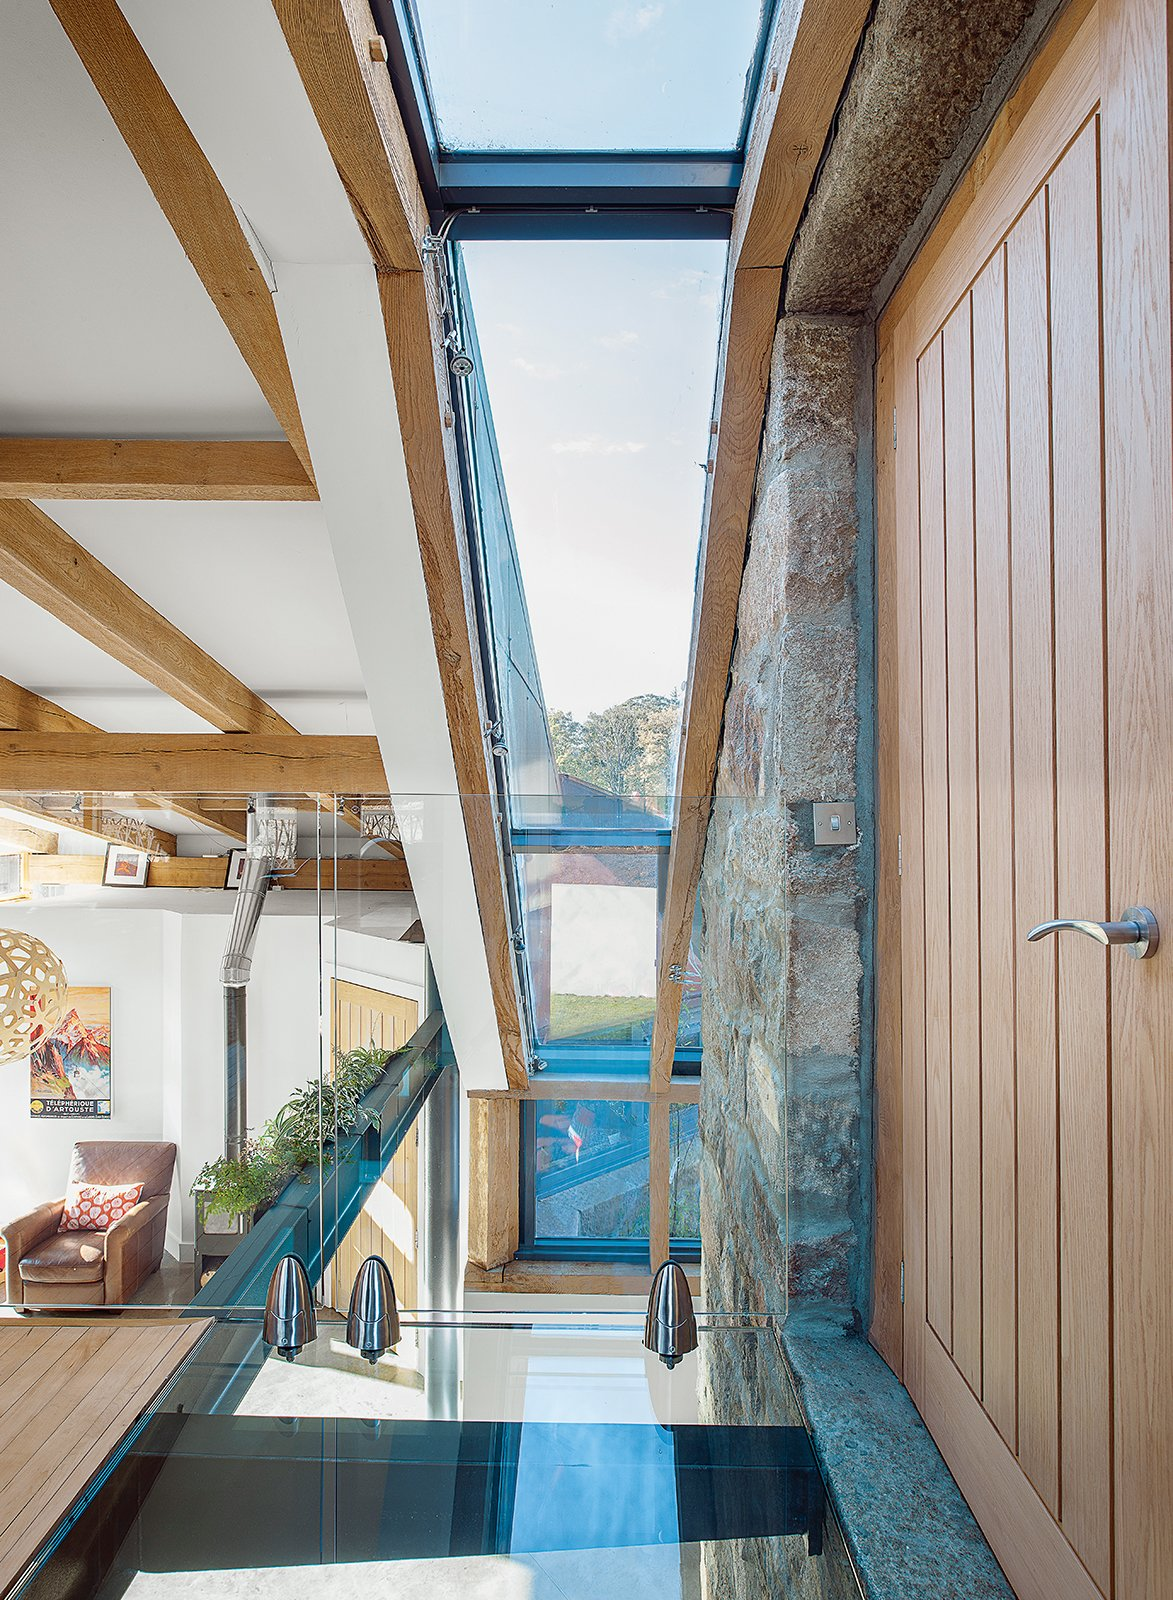 McAvoy worked with builder Stephen Campbell on structural elements such as the glass floor and walls. Tagged: Windows and Skylight Window Type.  Photo 4 of 11 in This Farmhouse is a Cor-Ten Steel-Clad Dream